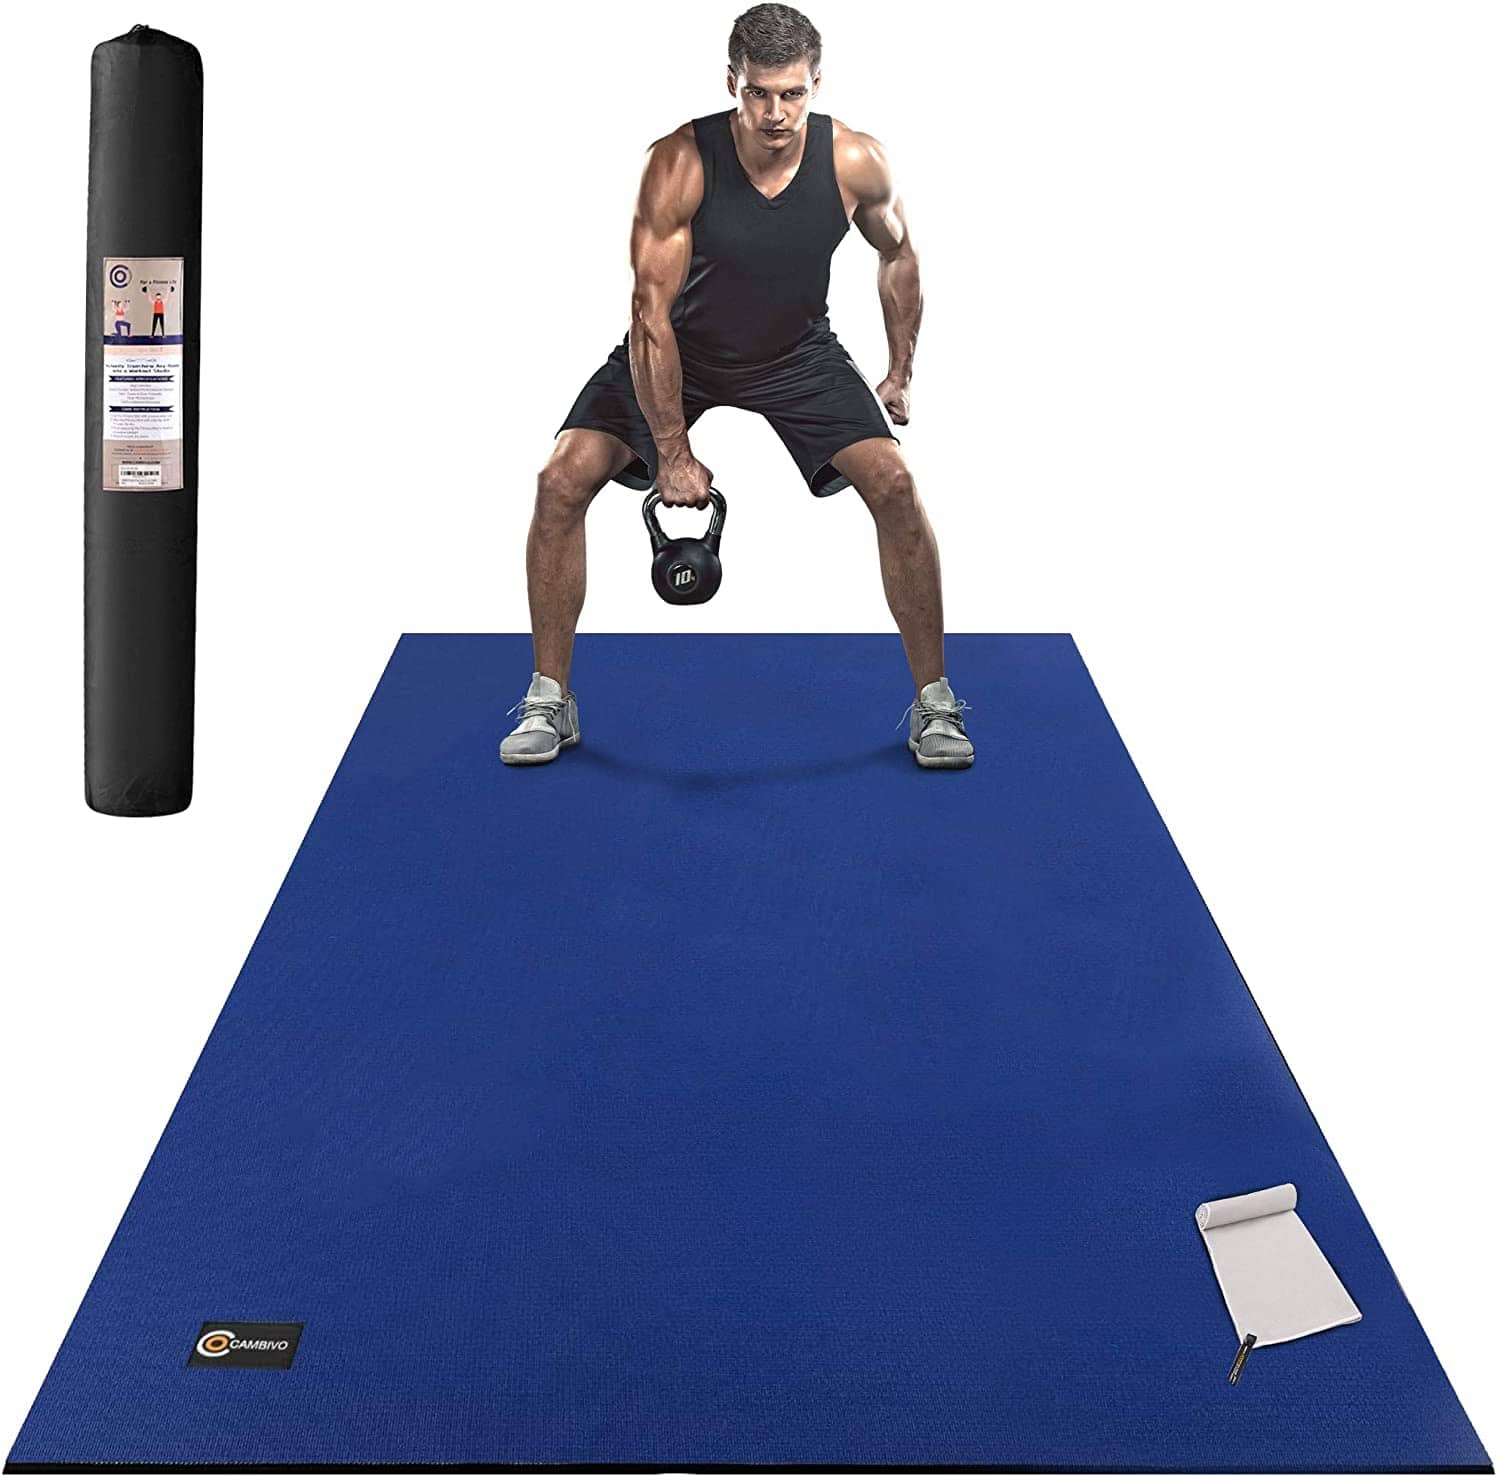 CAMBIVO Large Exercise Mat 6'x4'x7mm, Shoes Friendly Workout Mat for $59.99, Free Shipping w/ Prime